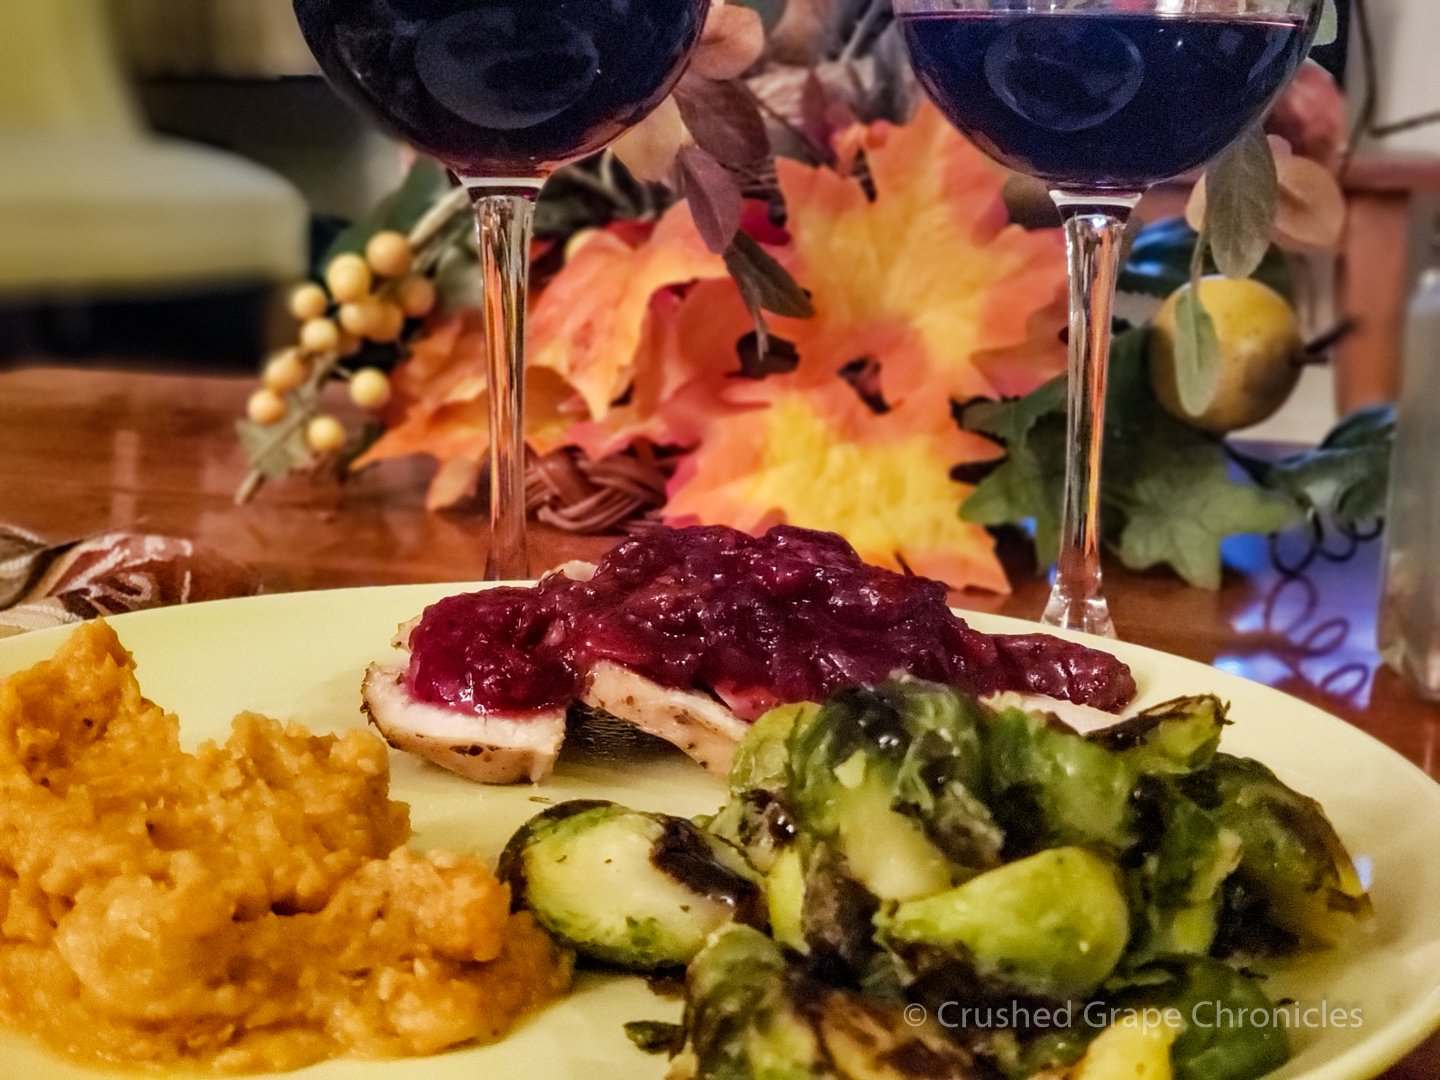 Rasteau Rouge with turkey, sweet potatoes and seared brussel sprouts.